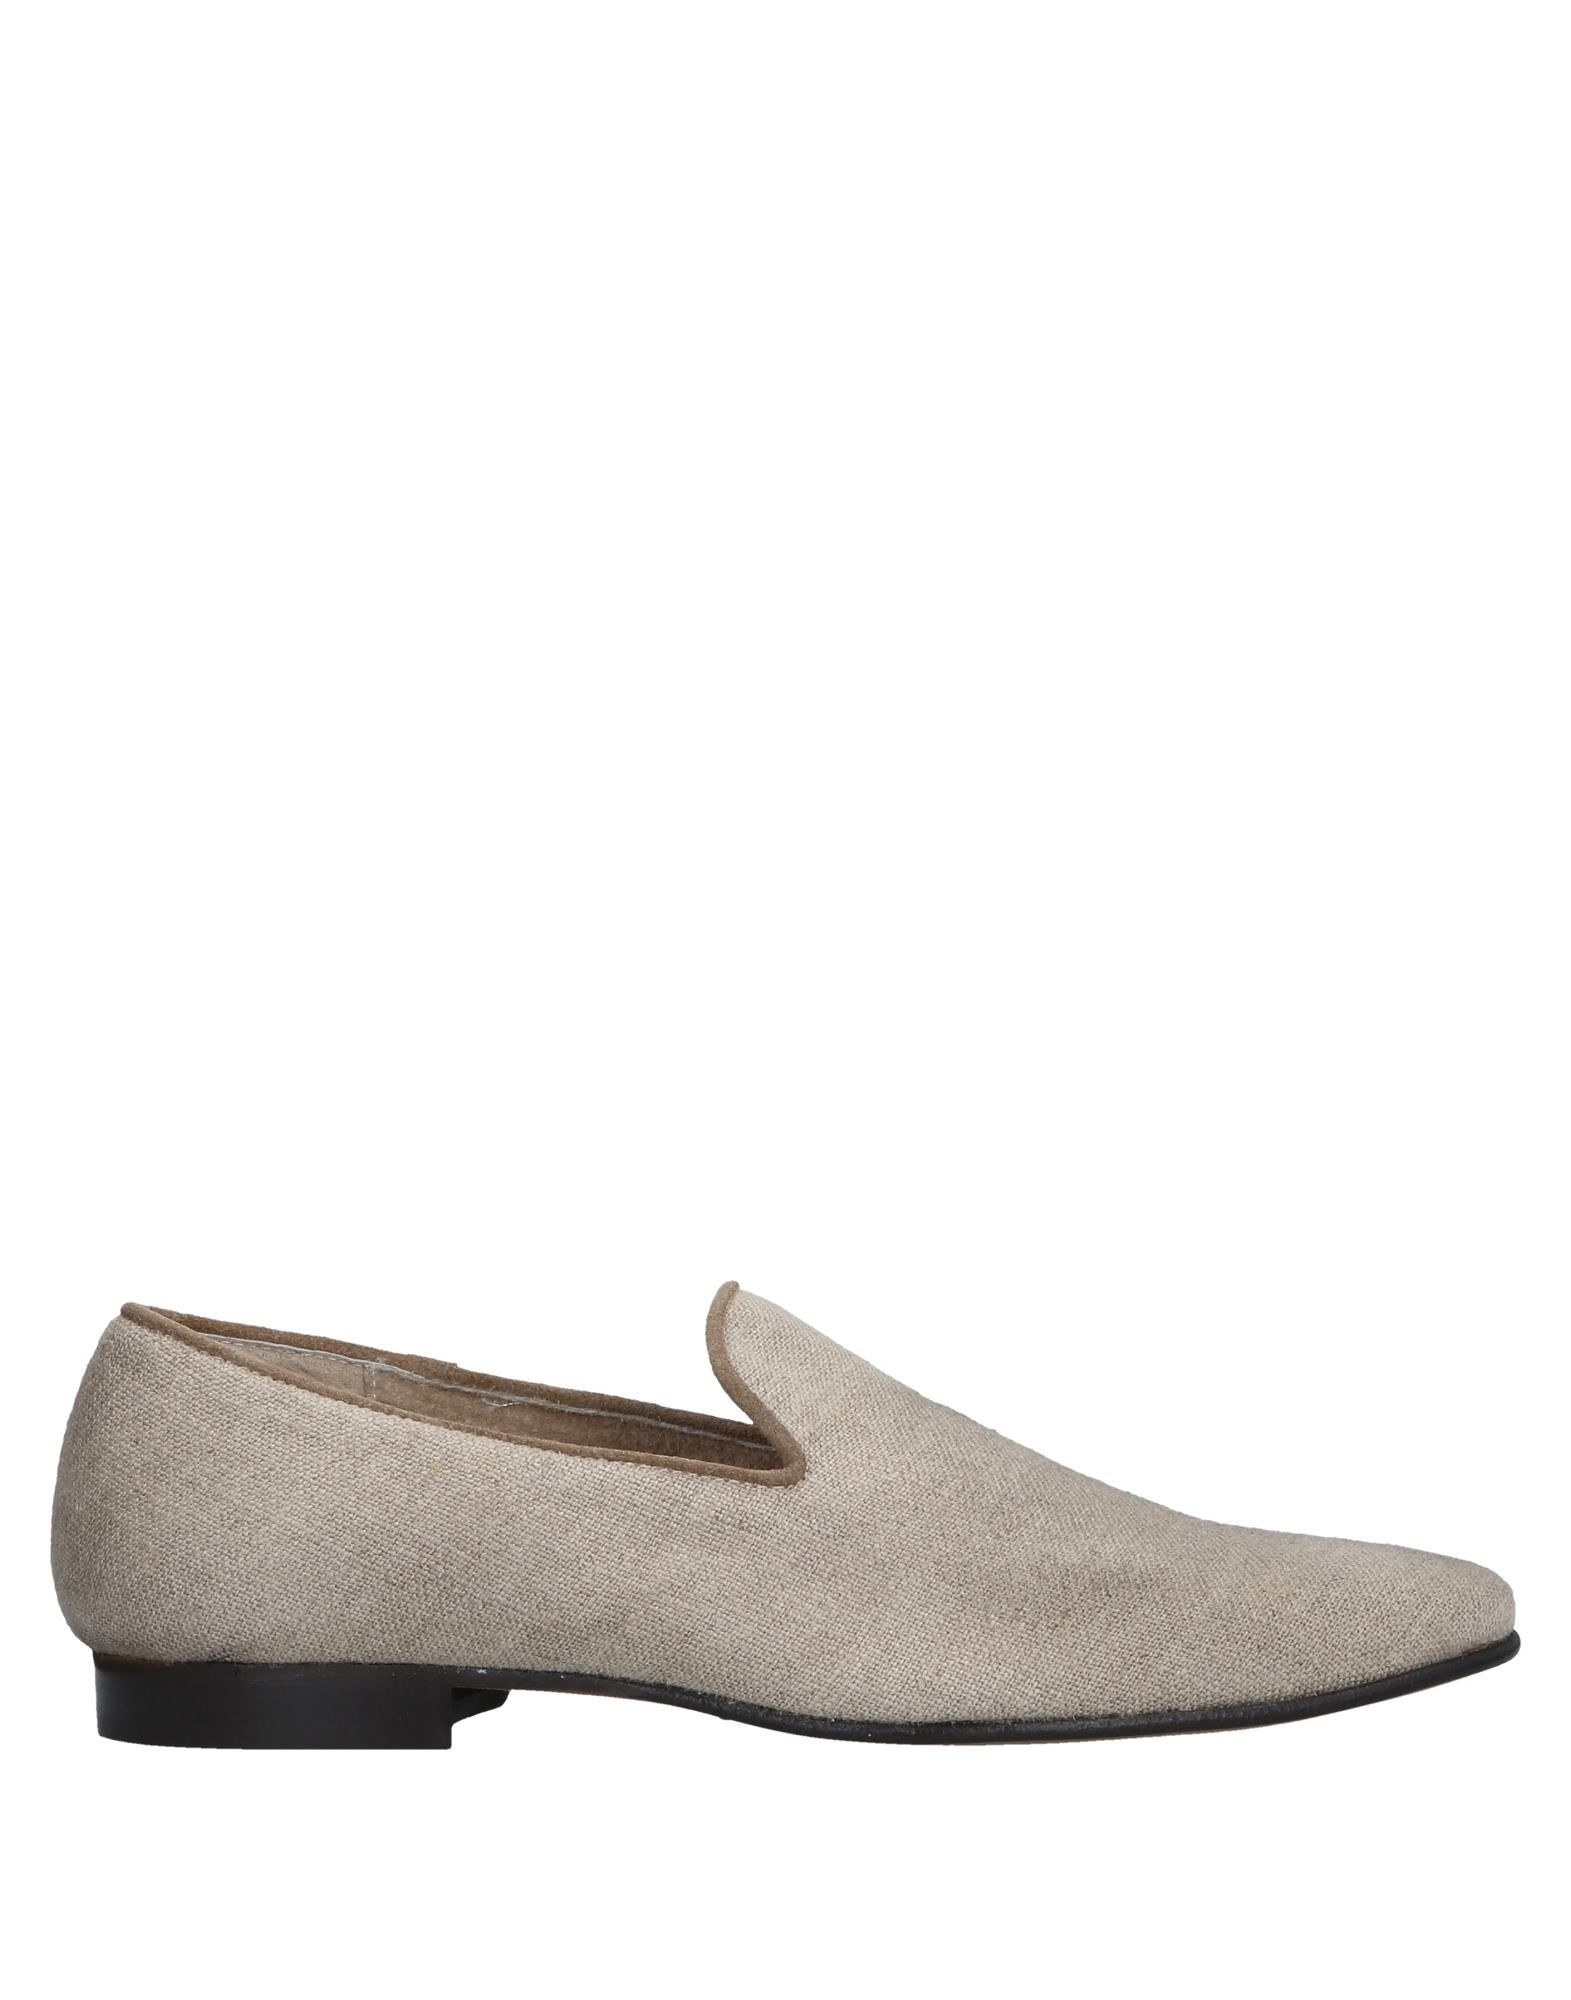 Daniele Alessandrini Loafers - Men Daniele Alessandrini Loafers online 11533467VS on  Canada - 11533467VS online 574c01